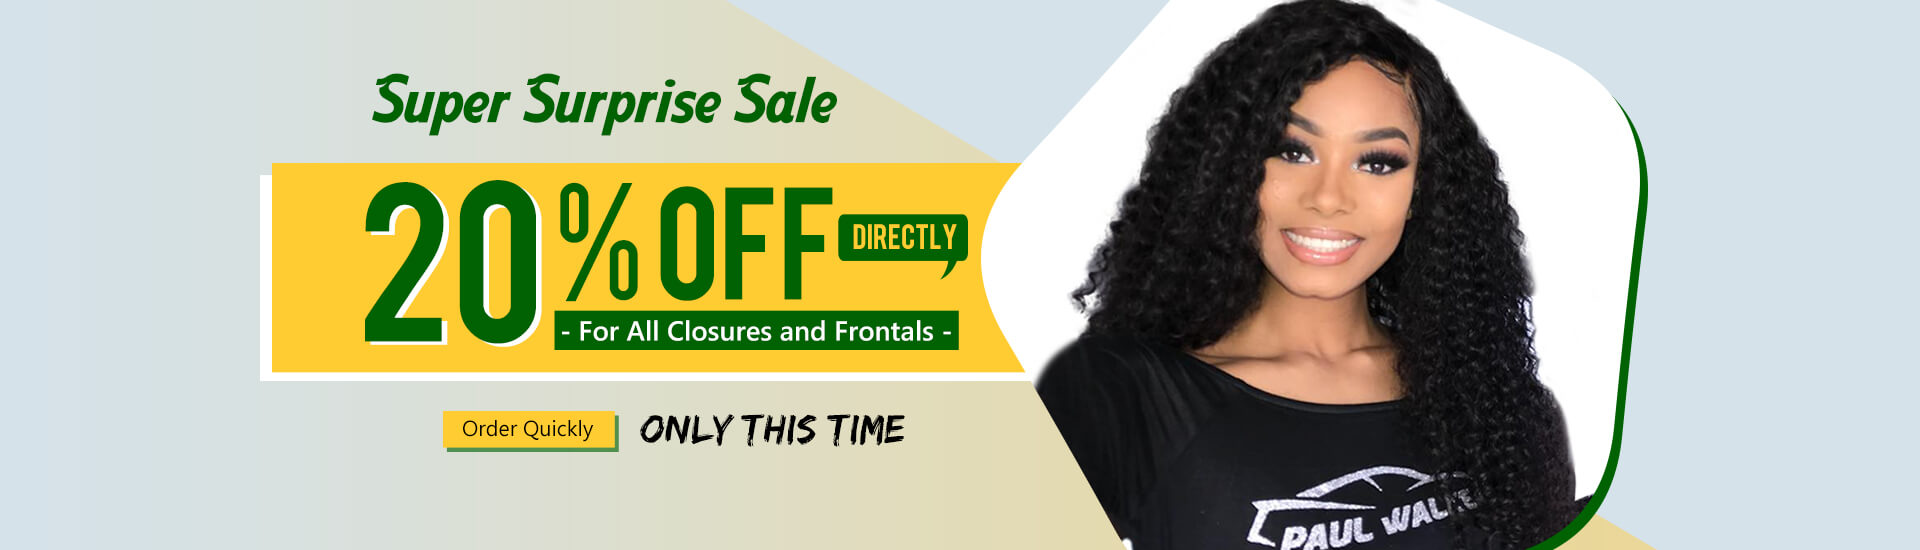 sales on 20% off on closure and frontal